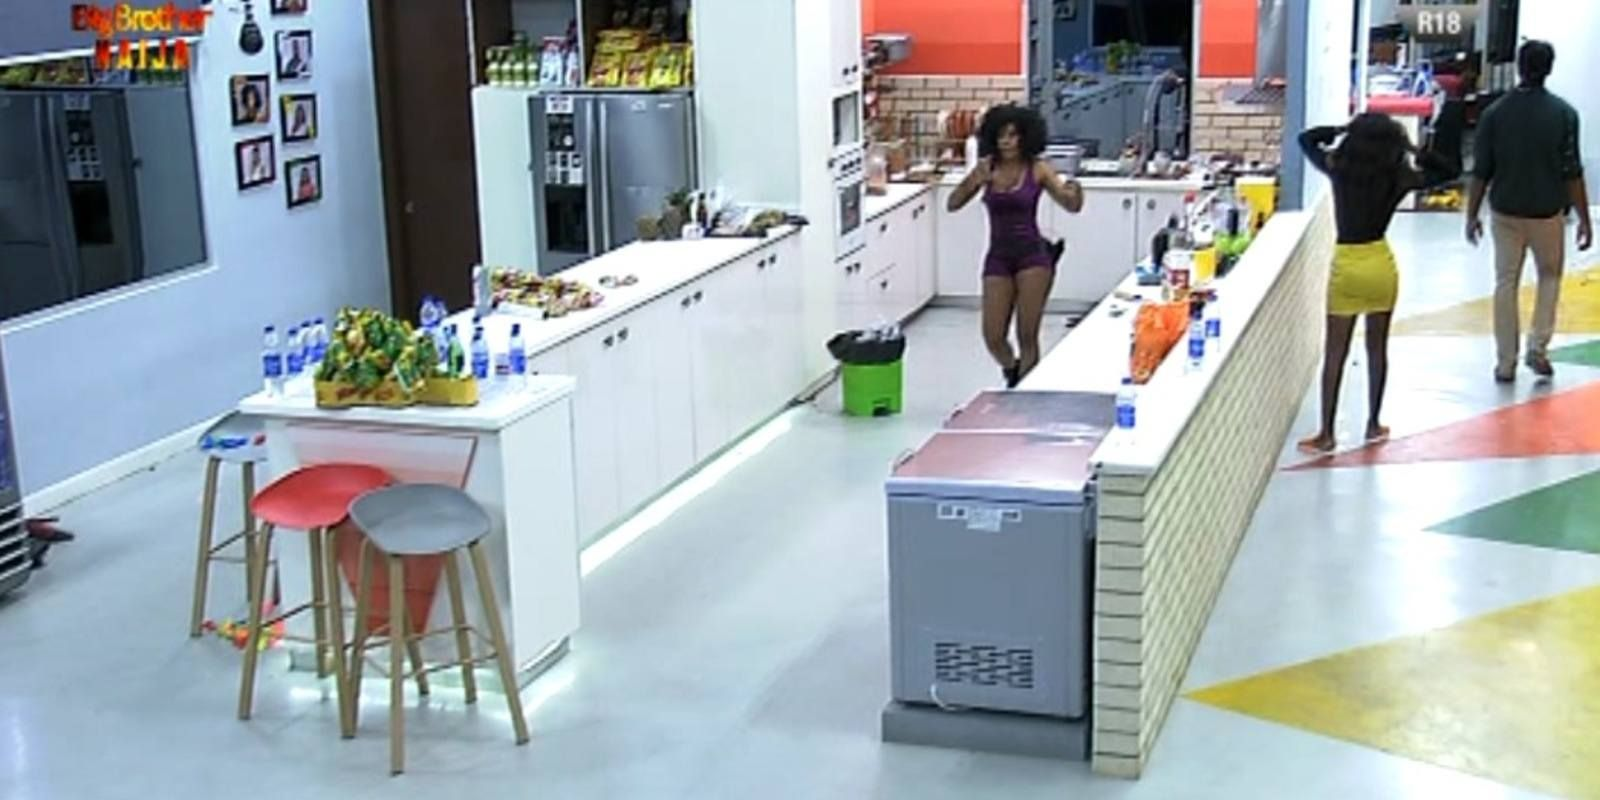 BBNaija 2019 Day 80 Highlights - Housemates and the missing red box